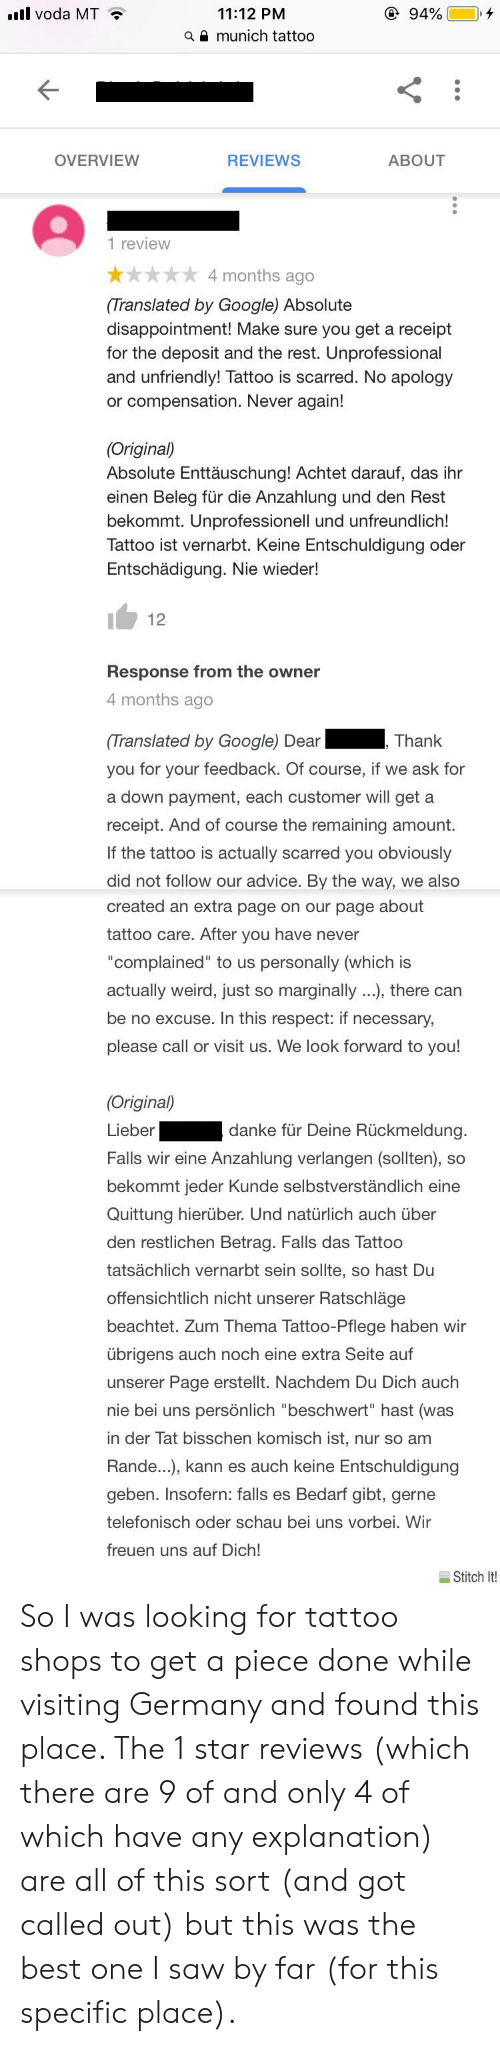 """Advice, Google, and Respect: llvoda MT  11:12 PM  munich tattoo  94%.  a  OVERVIEW  REVIEWS  ABOUT  1 review  * 4 months ago  (Translated by Google) Absolute  disappointment! Make sure you get a receipt  for the deposit and the rest. Unprofessional  and unfriendly! Tattoo is scarred. No apology  or compensation. Never again!  (Original)  Absolute Enttäuschung! Achtet darauf, das ihr  einen Beleg für die Anzahlung und den Rest  bekommt. Unprofessionell und unfreundlich!  Tattoo ist vernarbt. Keine Entschuldigung oder  Entschädigung. Nie wieder!  Response from the owner  4 months ago  Translated by Google) Dear Thank  you for your feedback. Of course, if we ask for  a down payment, each customer will get a  receipt. And of course the remaining amount.  If the tattoo is actually scarred you obviously  did not follow our advice. By the way, we also  created an extra page on our page about  tattoo care. After you have never  """"complained"""" to us personally (which is  actually weird, just so marginally ...), there can  be no excuse. In this respect: if necessary,  please call or visit us. We look forward to you!  Original)  Lieber  Falls wir eine Anzahlung verlangen (sollten), so  bekommt jeder Kunde selbstverstandlich eine  Quittung hierüber. Und natürlich auch über  den restlichen Betrag. Falls das Tattoo  tatsächlich vernarbt sein sollte, so hast Du  offensichtlich nicht unserer Ratschläge  beachtet. Zum Thema Tattoo-Pflege haben wir  übrigens auch noch eine extra Seite auf  unserer Page erstellt. Nachdem Du Dich auch  nie bei uns persönlich """"beschwert"""" hast (was  in der Tat bisschen komisch ist, nur so am  Rande...), kann es auch keine Entschuldigung  geben. Insofern: falls es Bedarf gibt, gerne  telefonisch oder schau bei uns vorbei. Wir  freuen uns auf Dich!  danke für Deine Rückmeldung  Stitch It! So I was looking for tattoo shops to get a piece done while visiting Germany and found this place. The 1 star reviews (which there are 9 of and only 4 of which have any exp"""